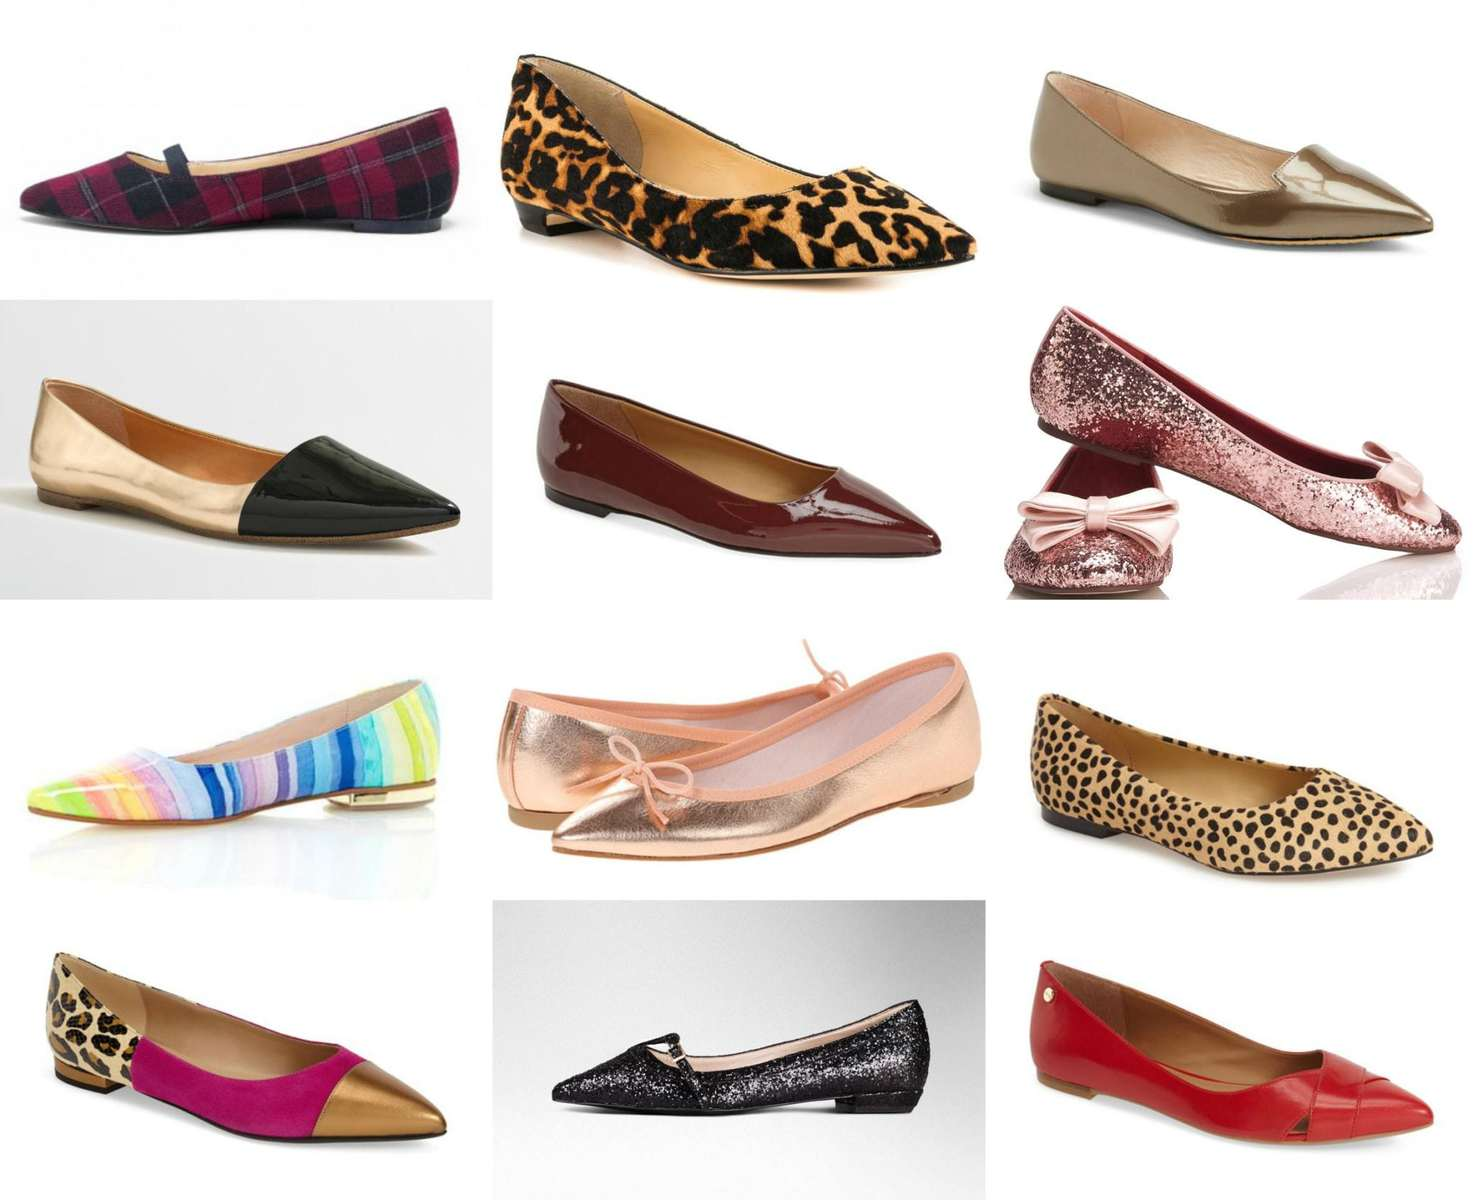 stylish flats for curvy or plus size women for fall winter 2015 2016